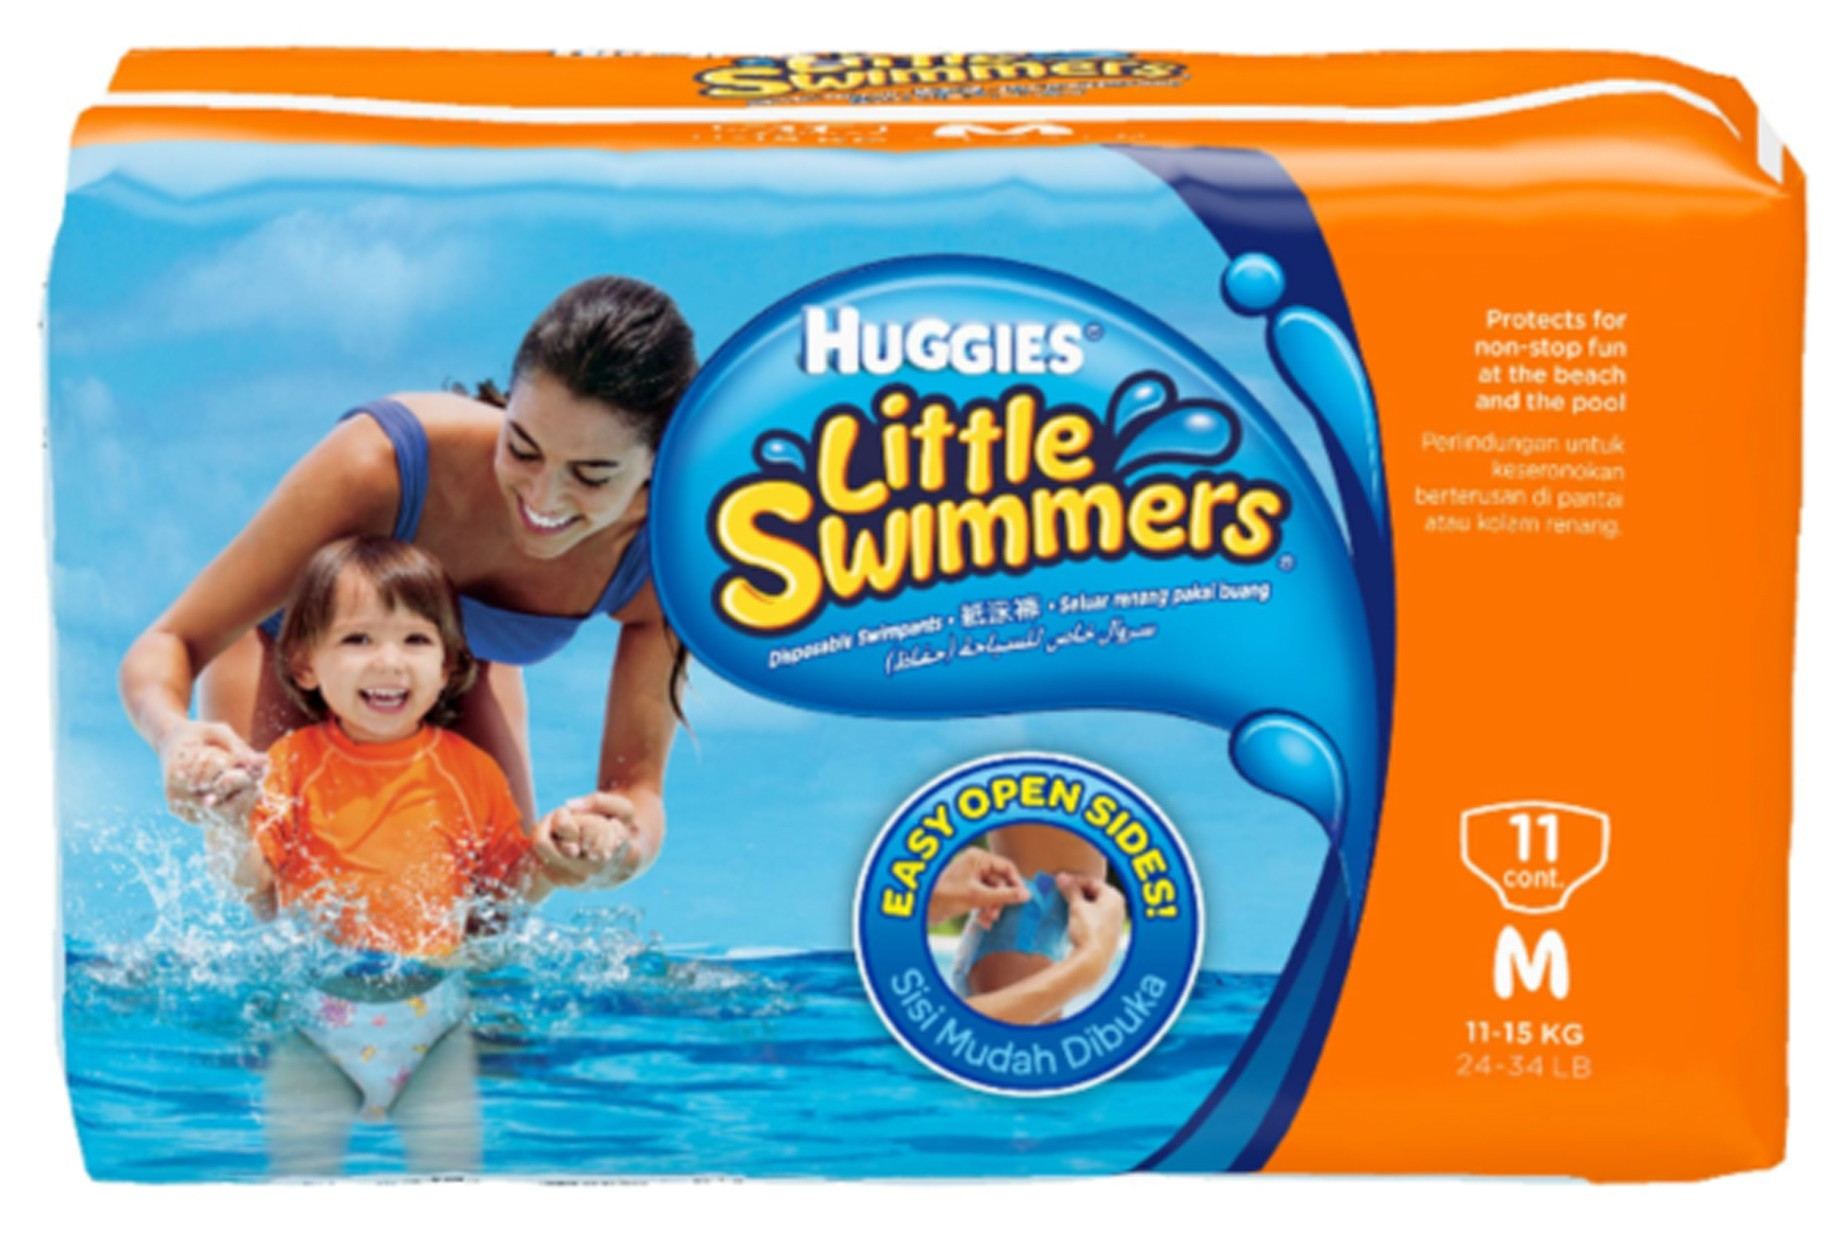 In what cases diapers for swimming will be useful